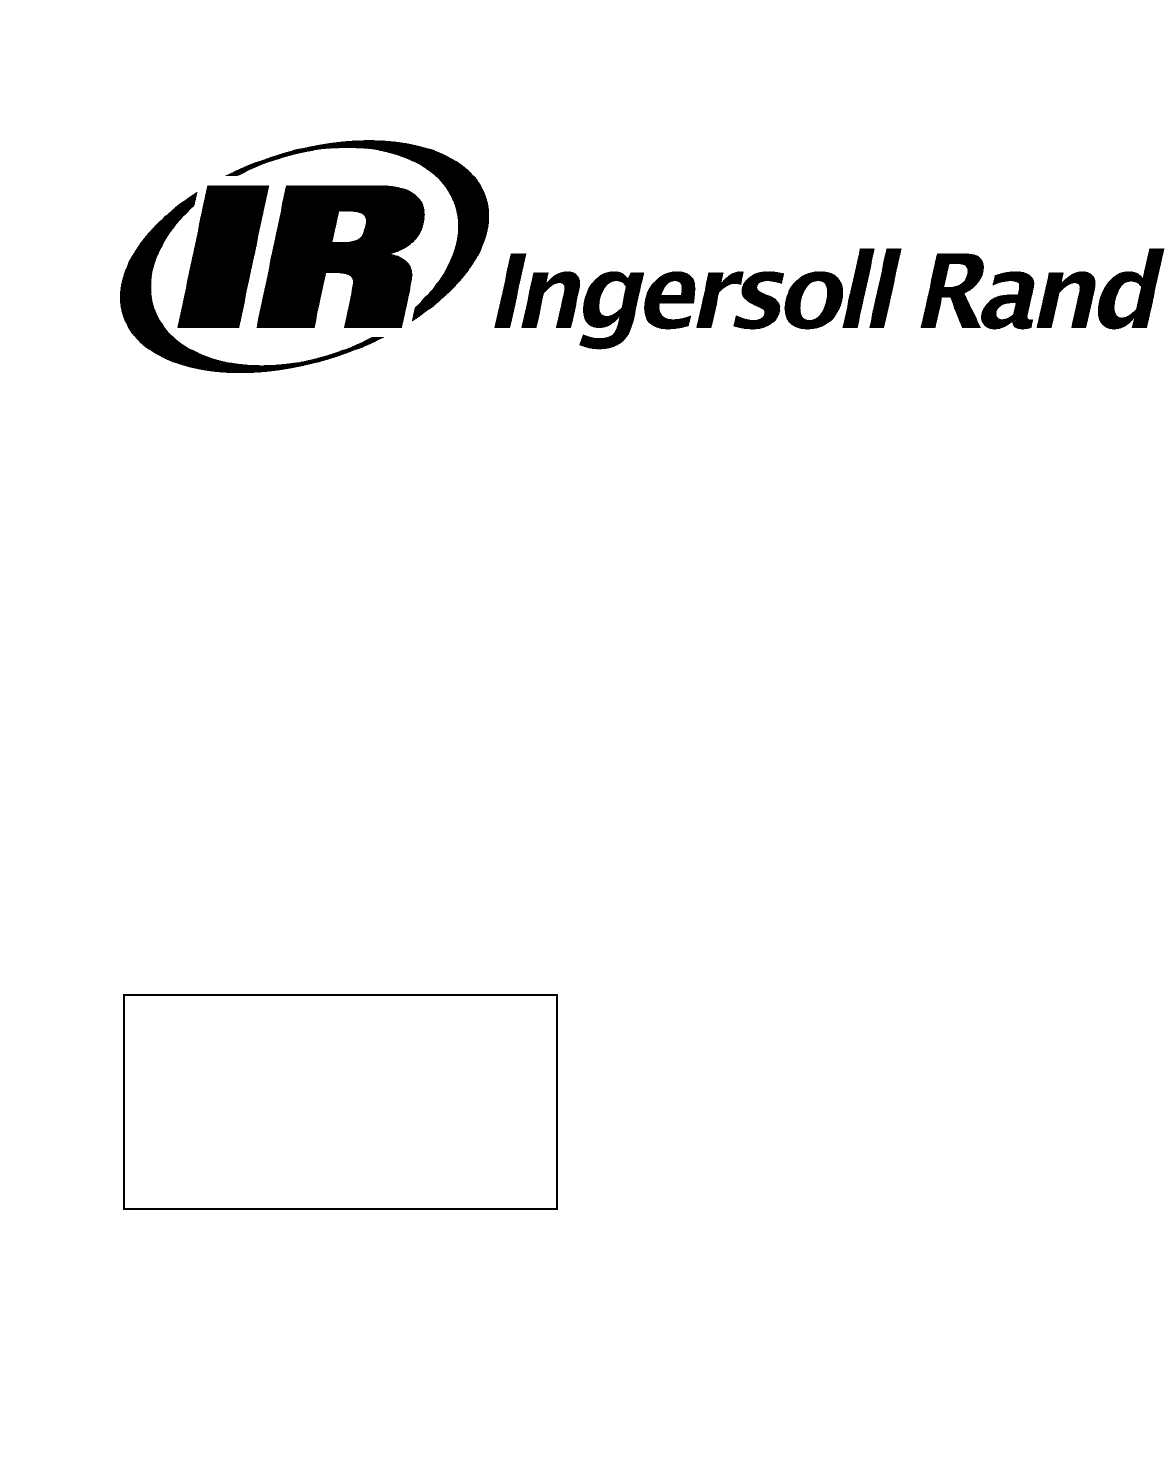 e8e2f301 c240 49a2 992c b1178cd49539 bg1 ingersoll rand air compressor 100 200 hp 75 160 kw user guide